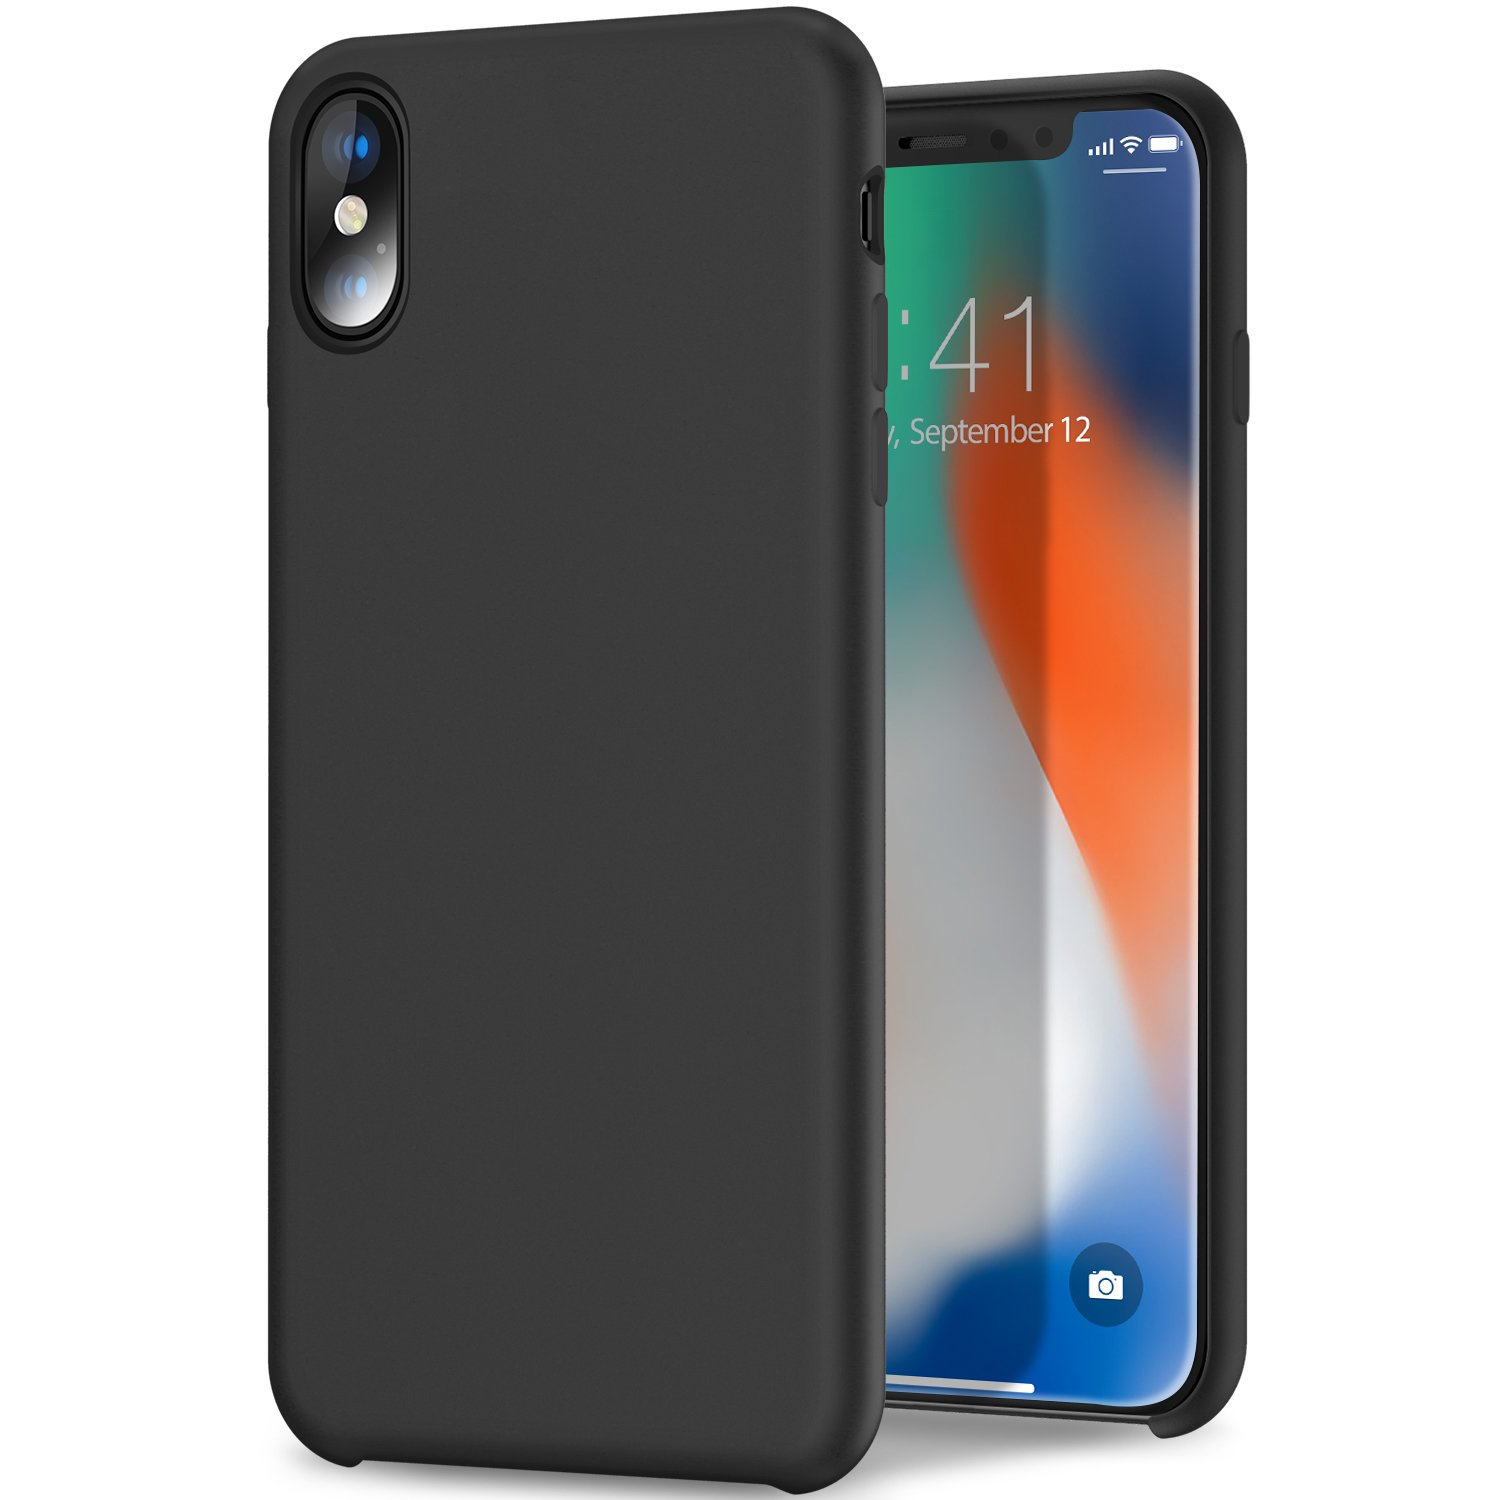 iPhone X Cases: Case 2